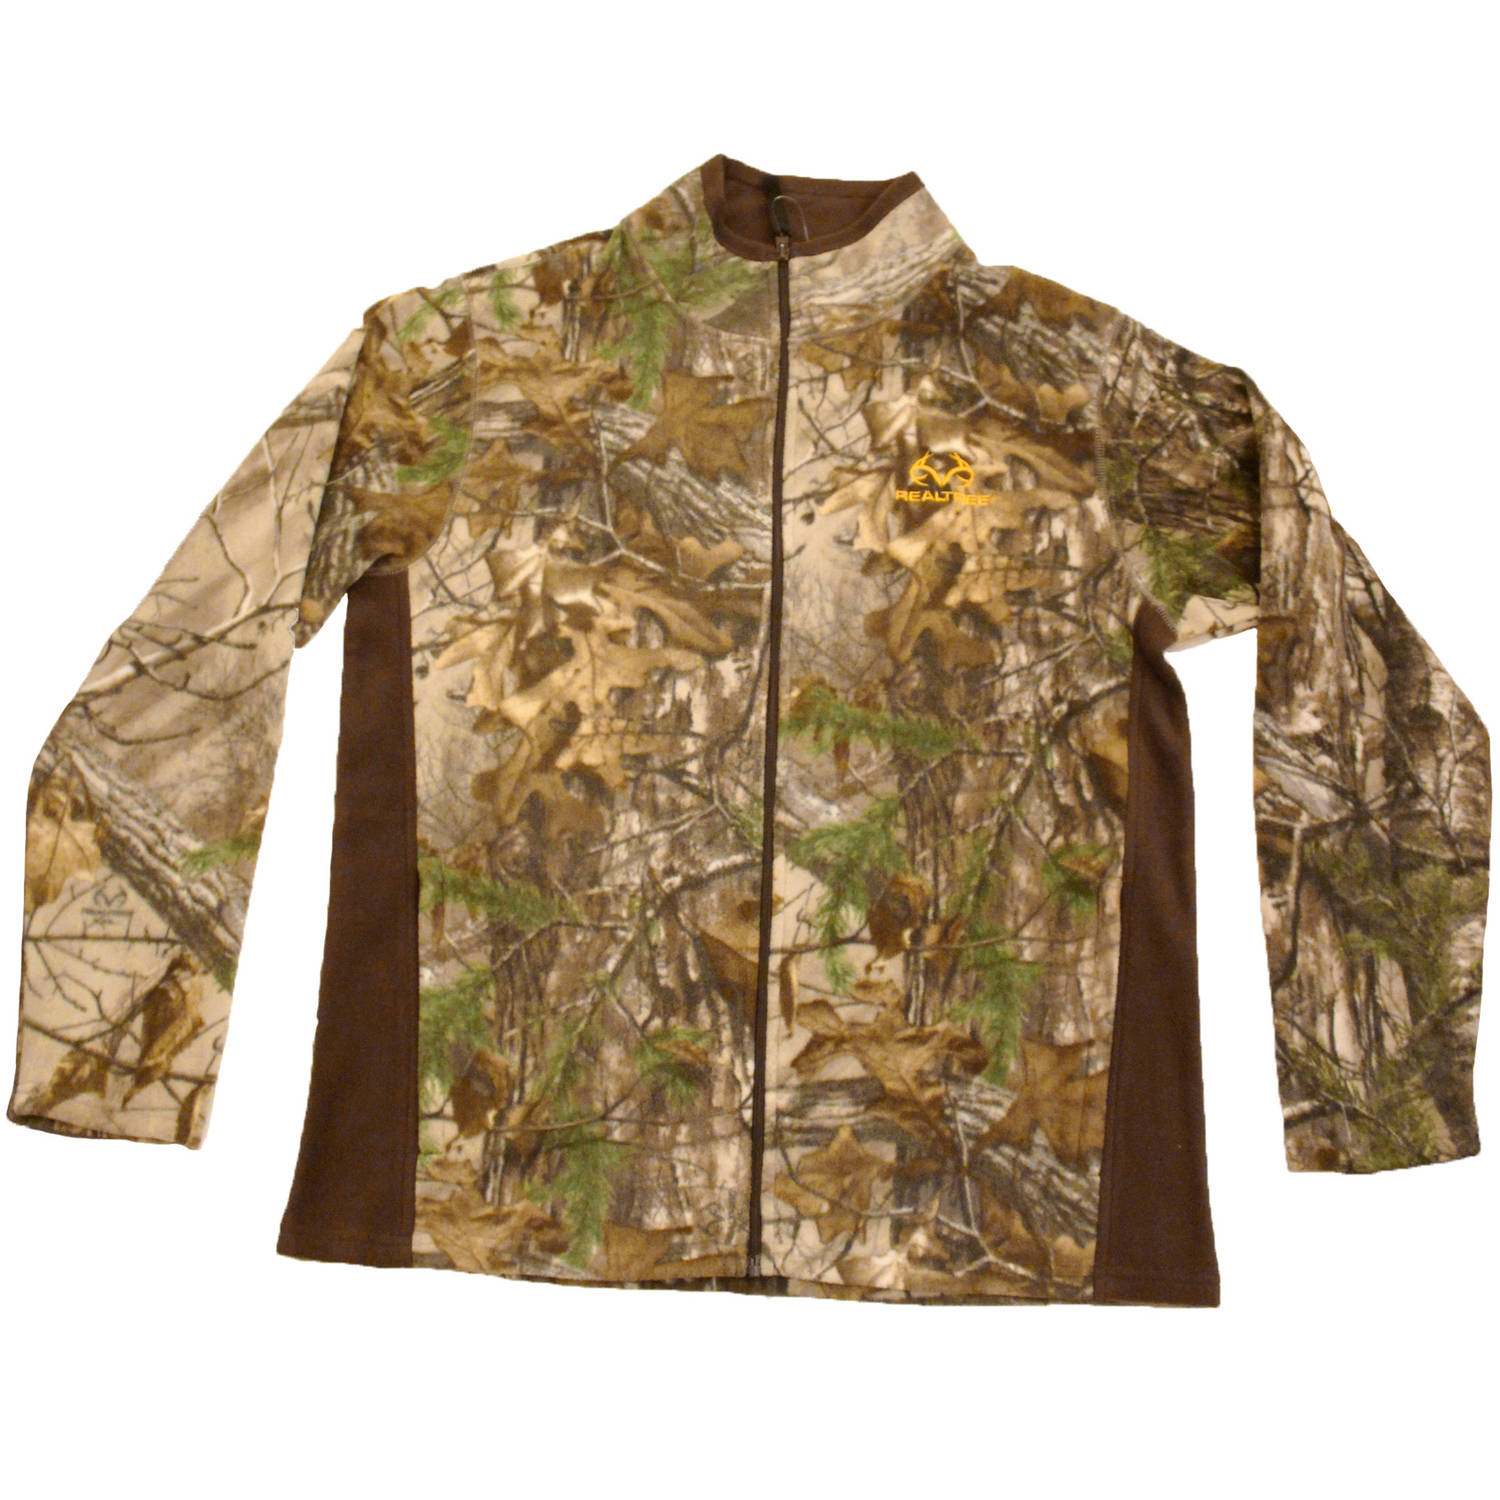 Realtree Men's Fleece Camo Full Zip Jacket, Realtree Xtra by Generic